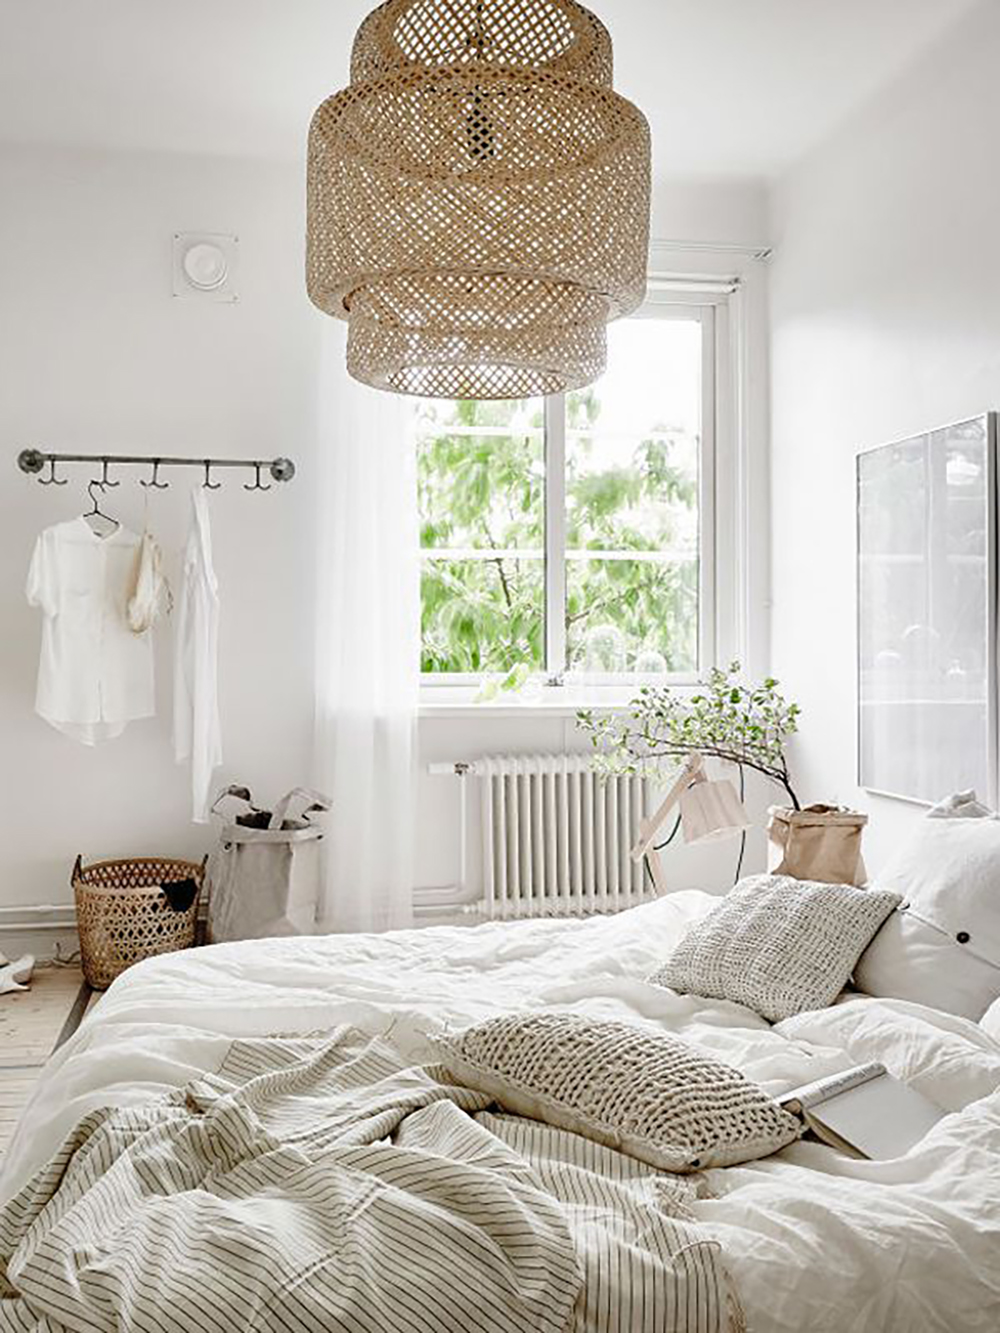 Sinnerlig pendant lamp by IKEA for natural look - Transform your home into a tropical paradise | Aliz's Wonderland